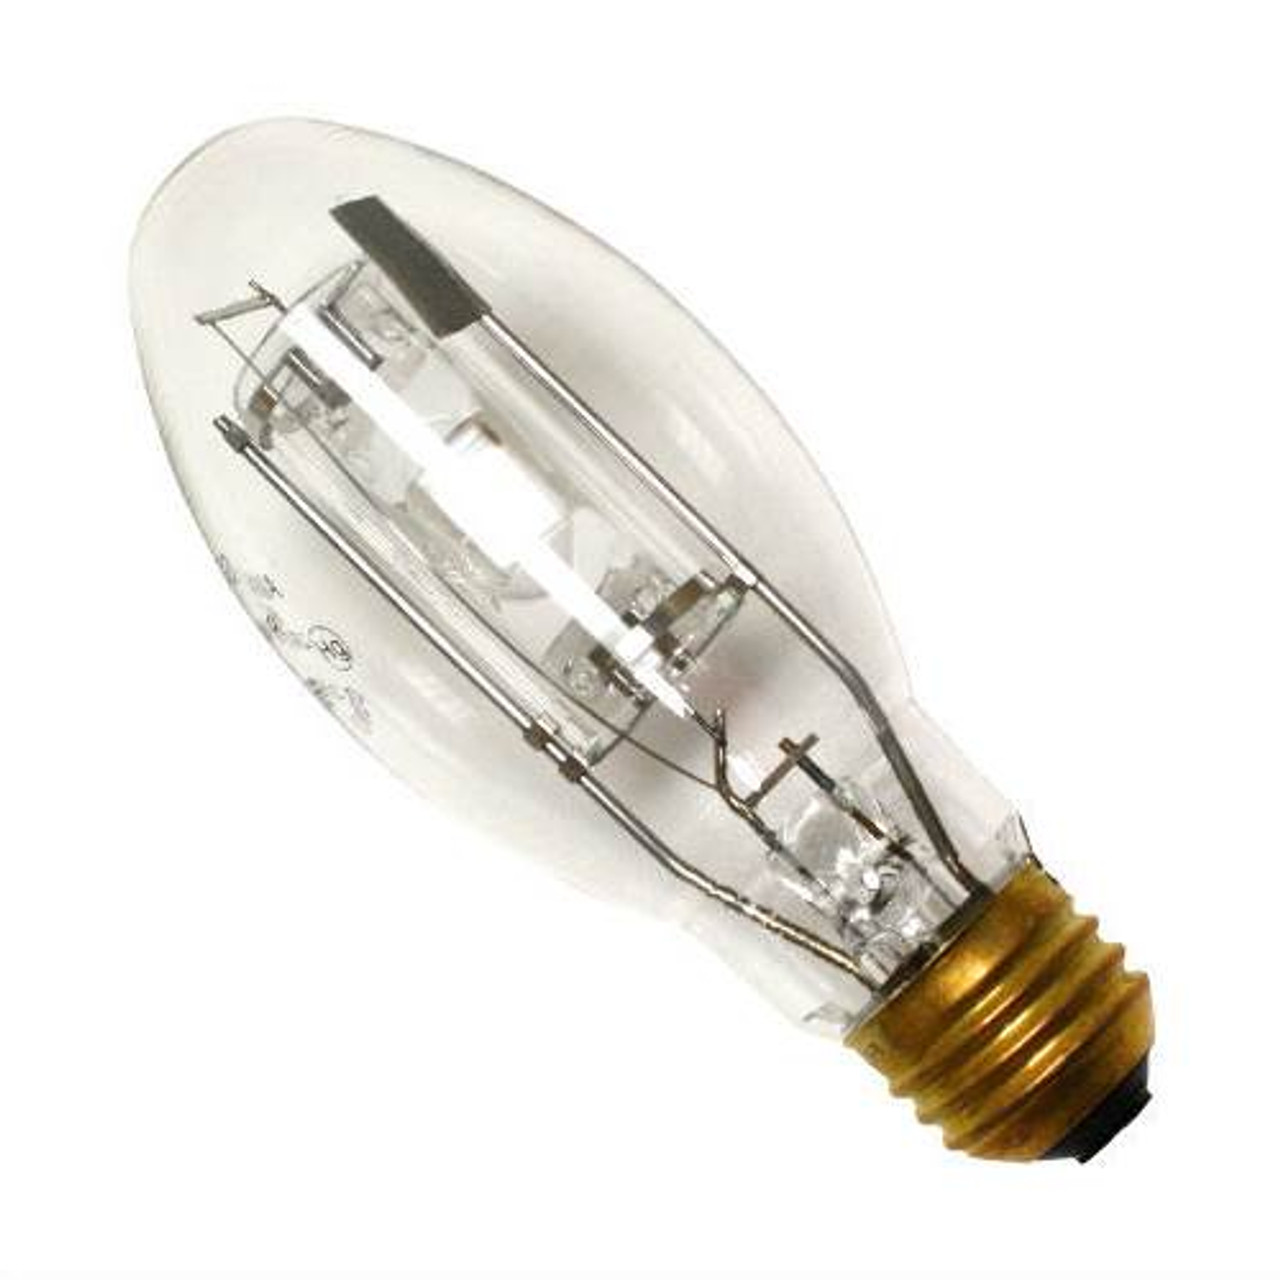 NEW IN BOX-SYLVANIA-MP150-C-U-MED-COATED-BULB-150W-Metalarc Pro-Tec